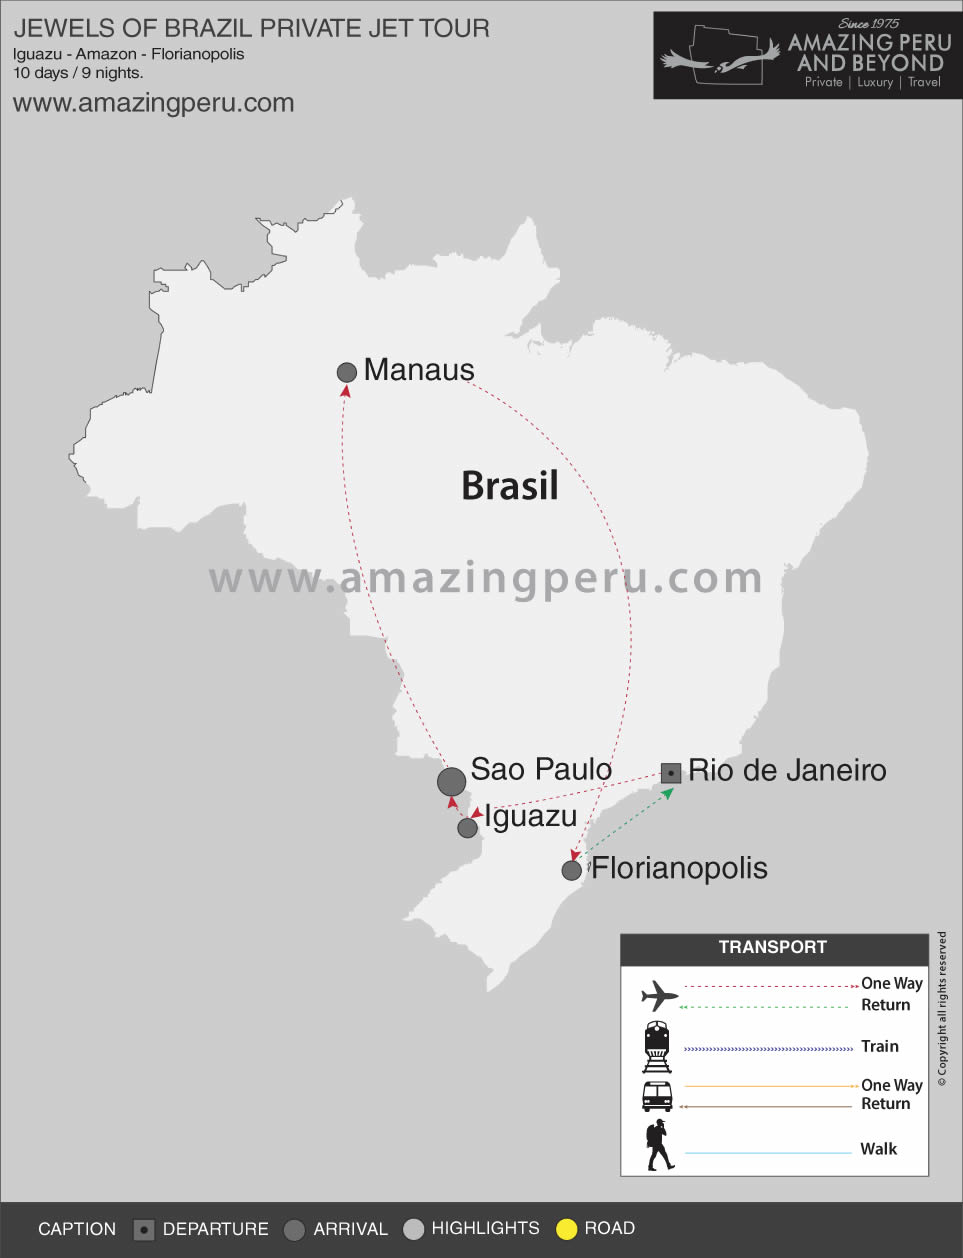 Jewels of Brazil Private Jet Tour - 10 days / 9 nights.